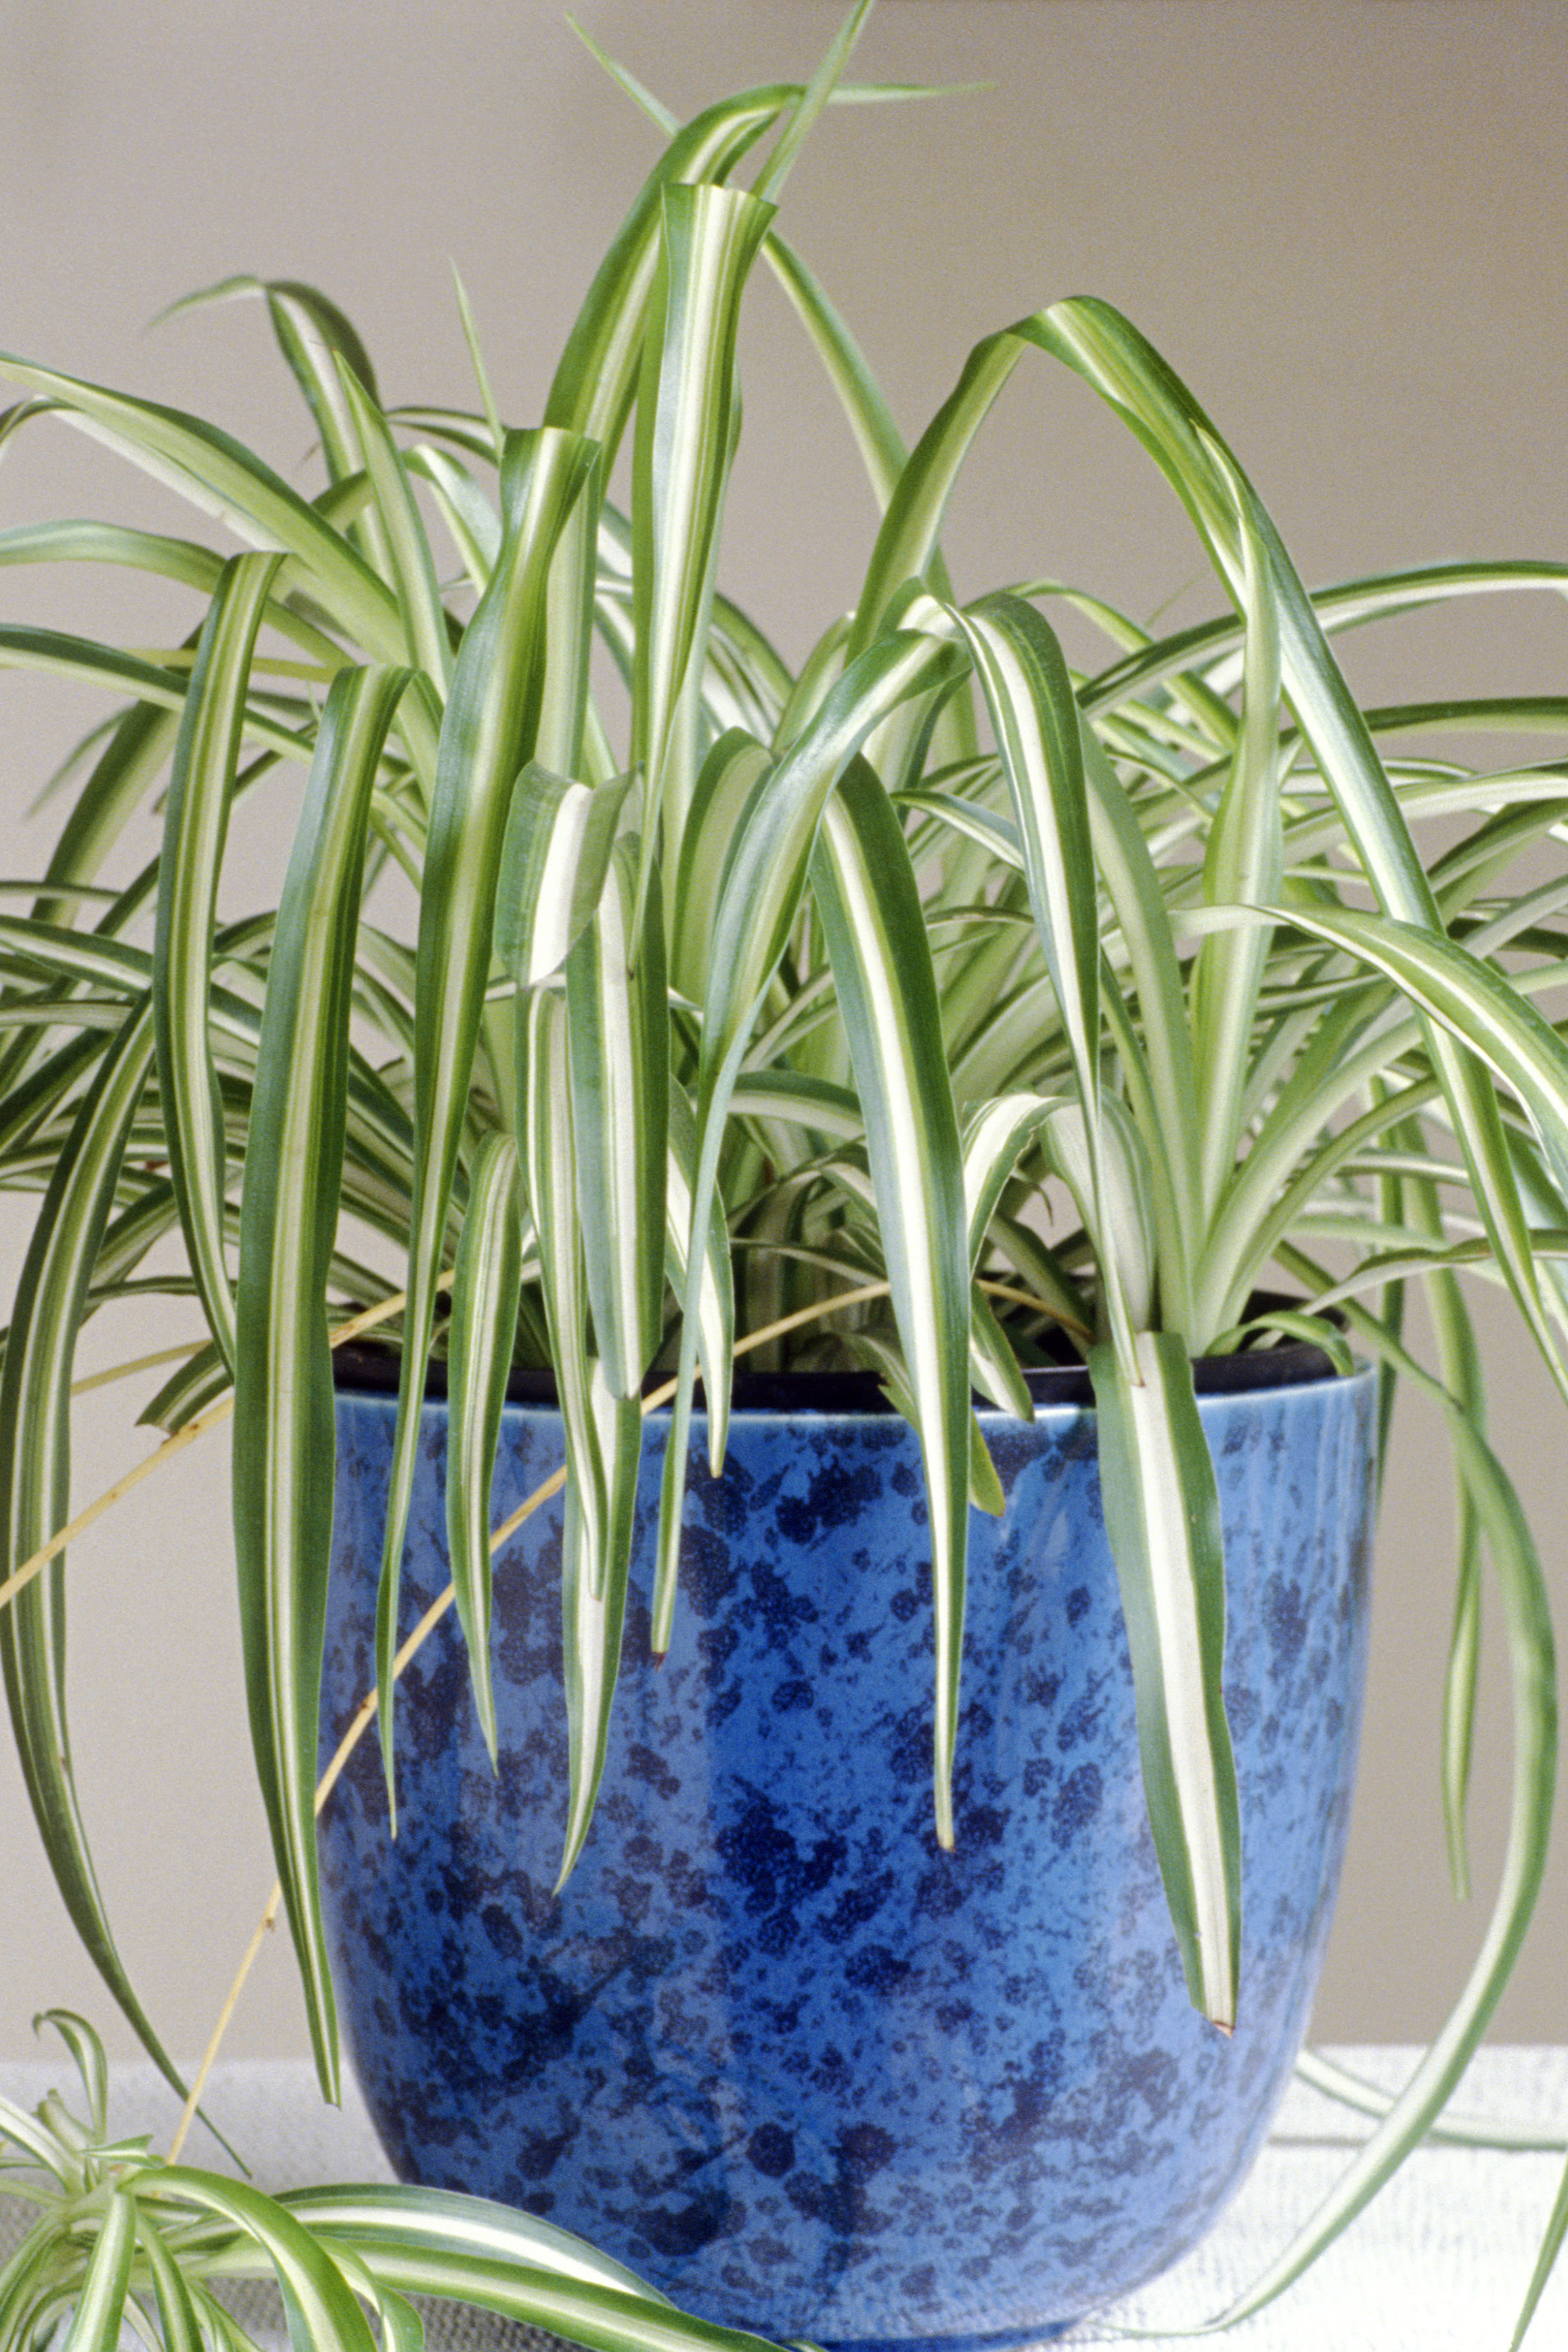 20 Easy Houseplants - Easy To Care For Indoor Plants